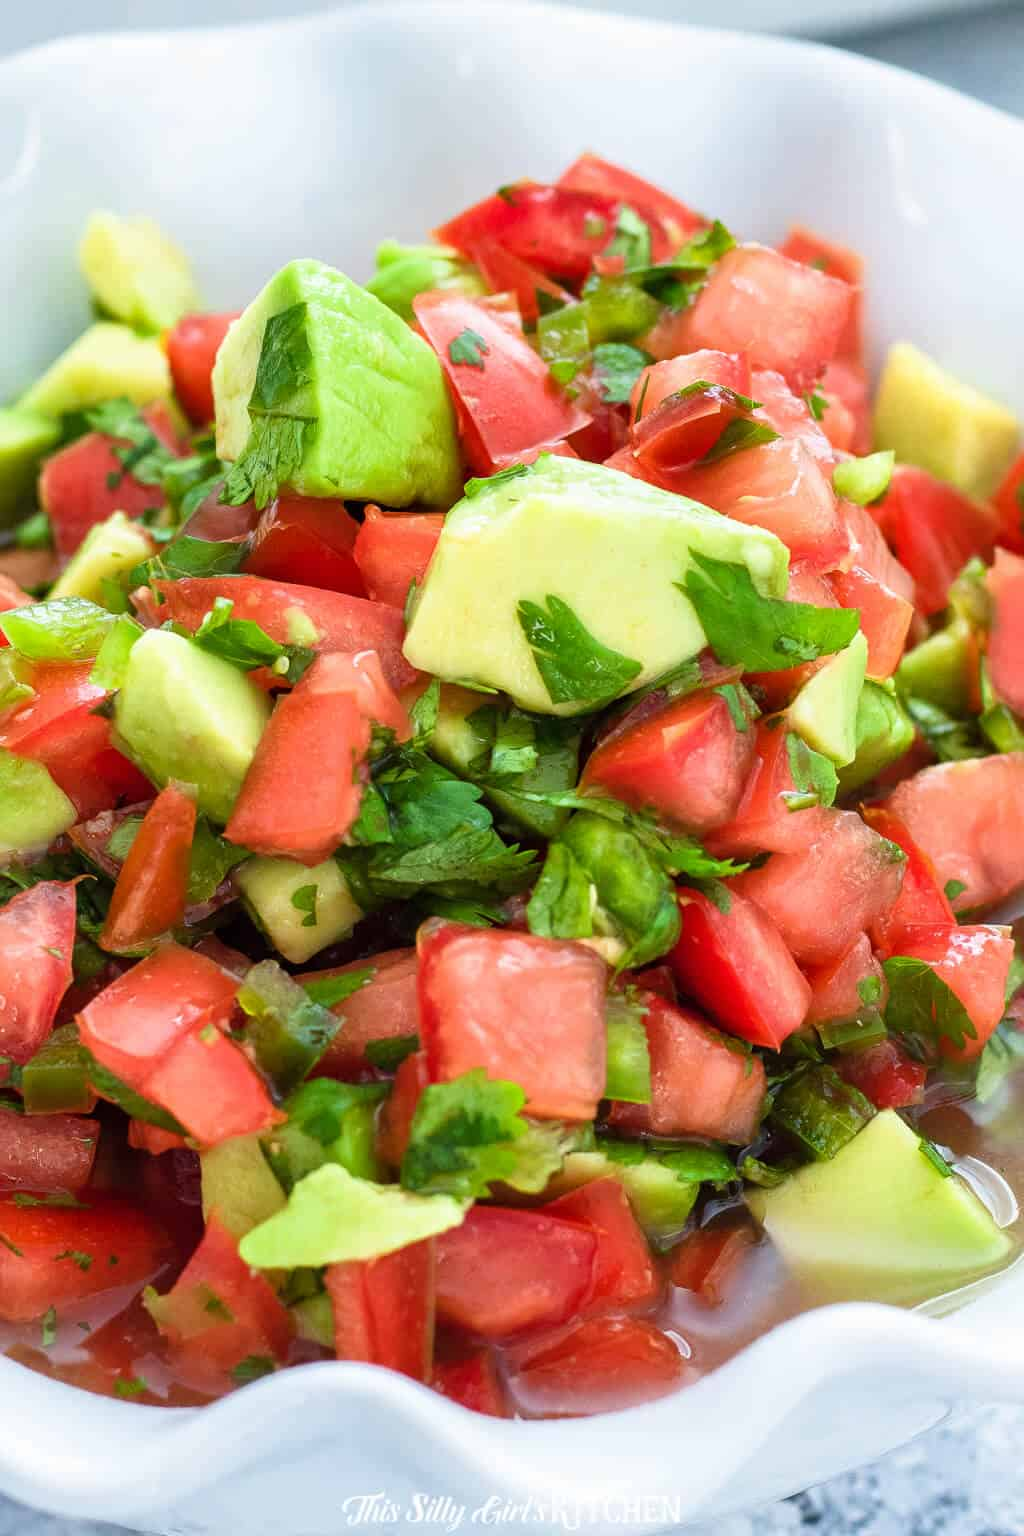 Avocado salsa, the perfect accompaniment to Taco Tuesday! #recipe from thissillygirlskitchen.com #avocadosalsa #salsa #avocado